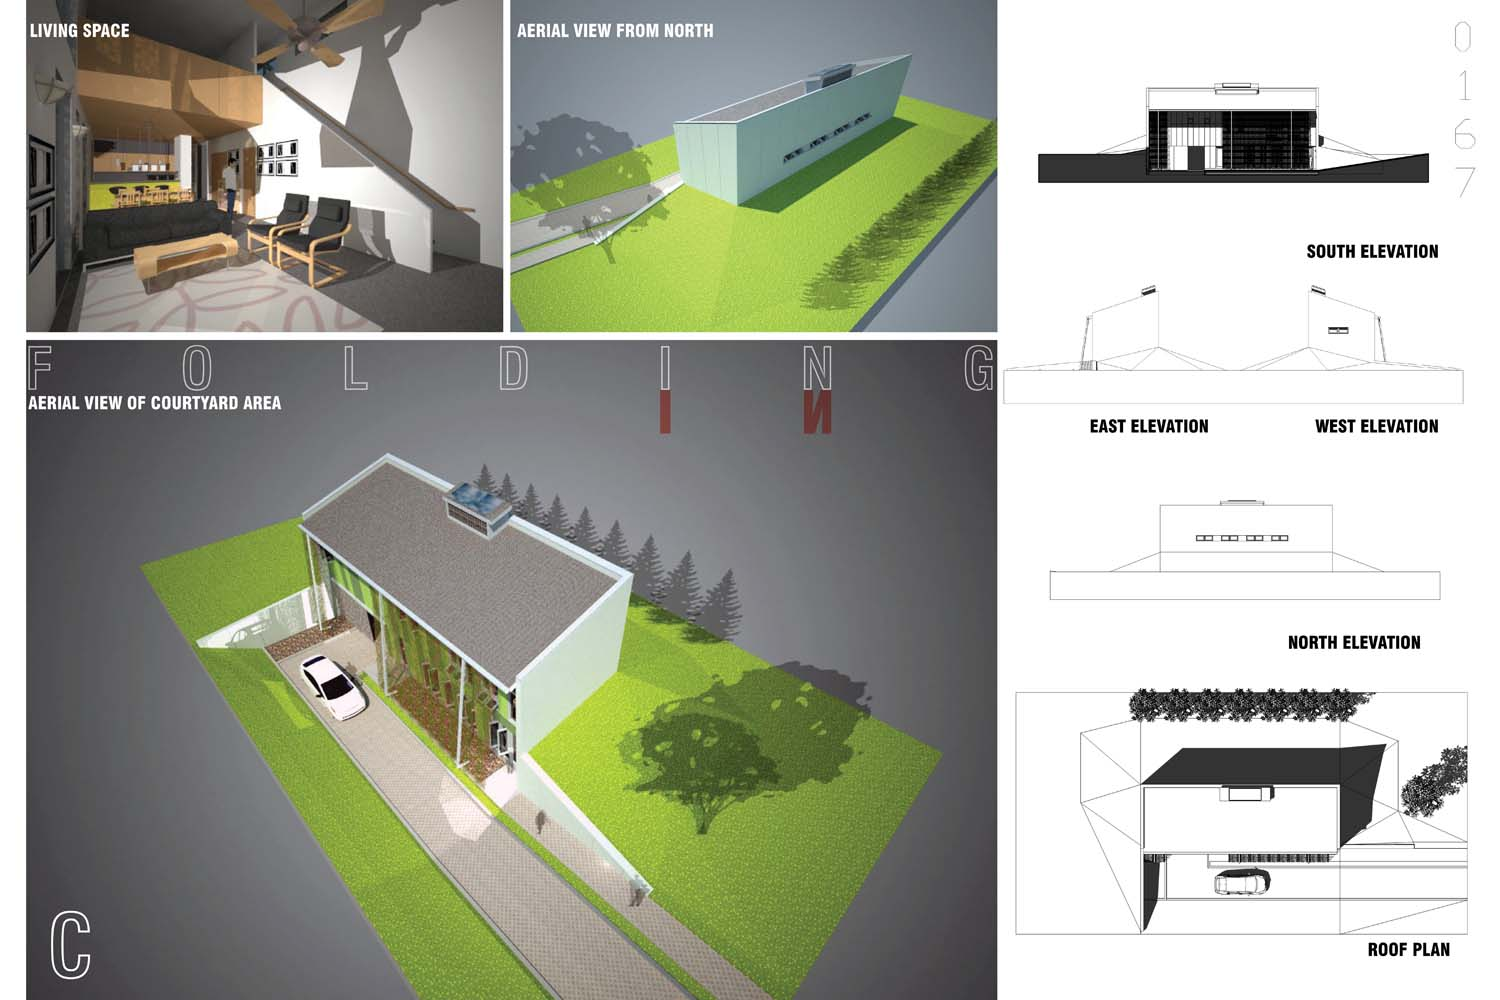 House Design Competition Home Design And Style - Eco home design